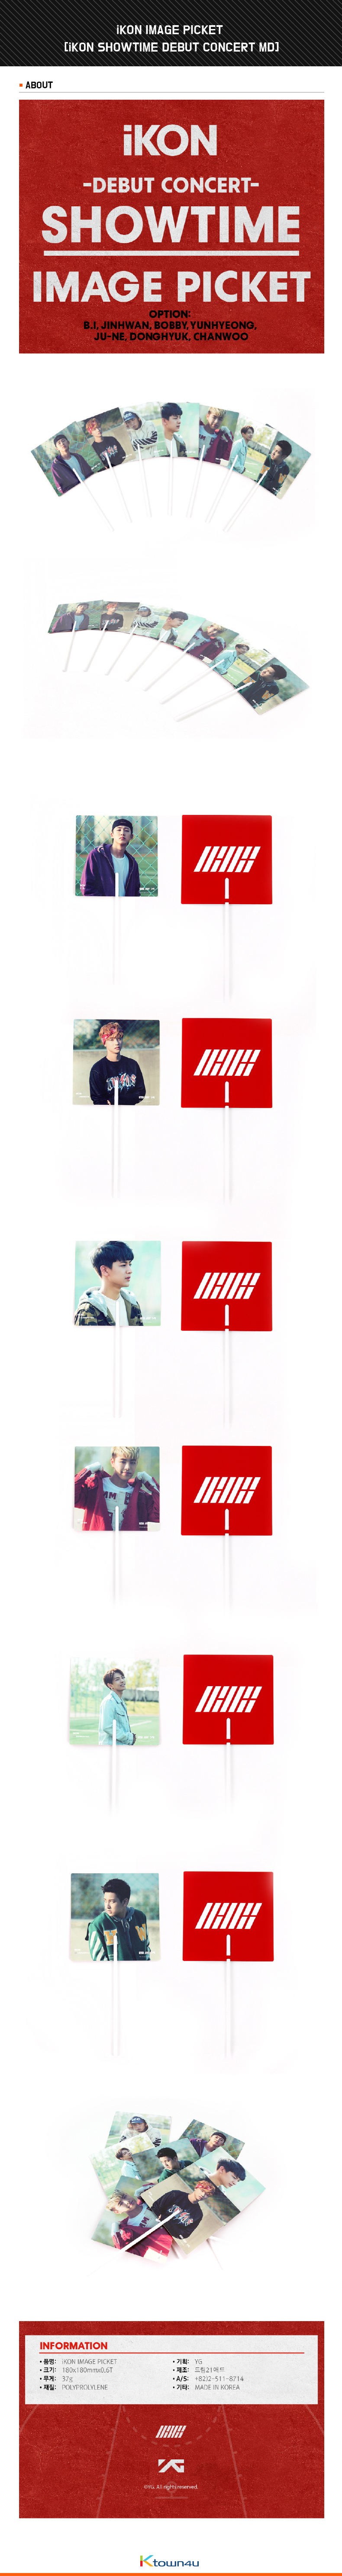 iKON - IMAGE PICKET [iKON SHOWTIME DEBUT CONCERT MD]